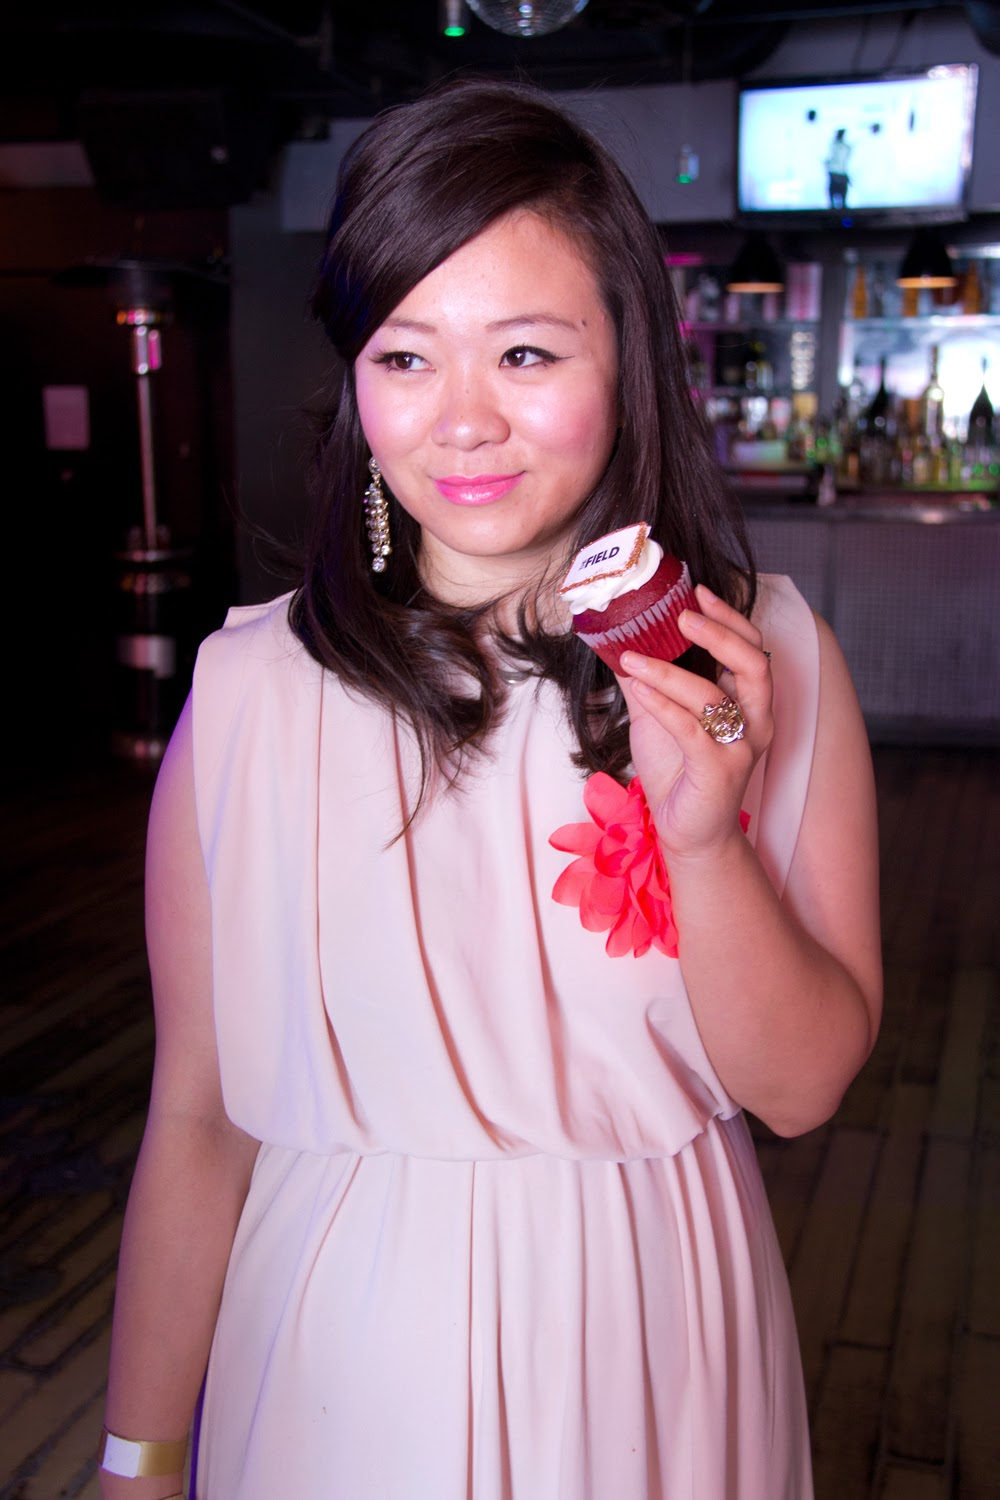 The-fields-party, much-music-video-award-2014, melly-cupcake